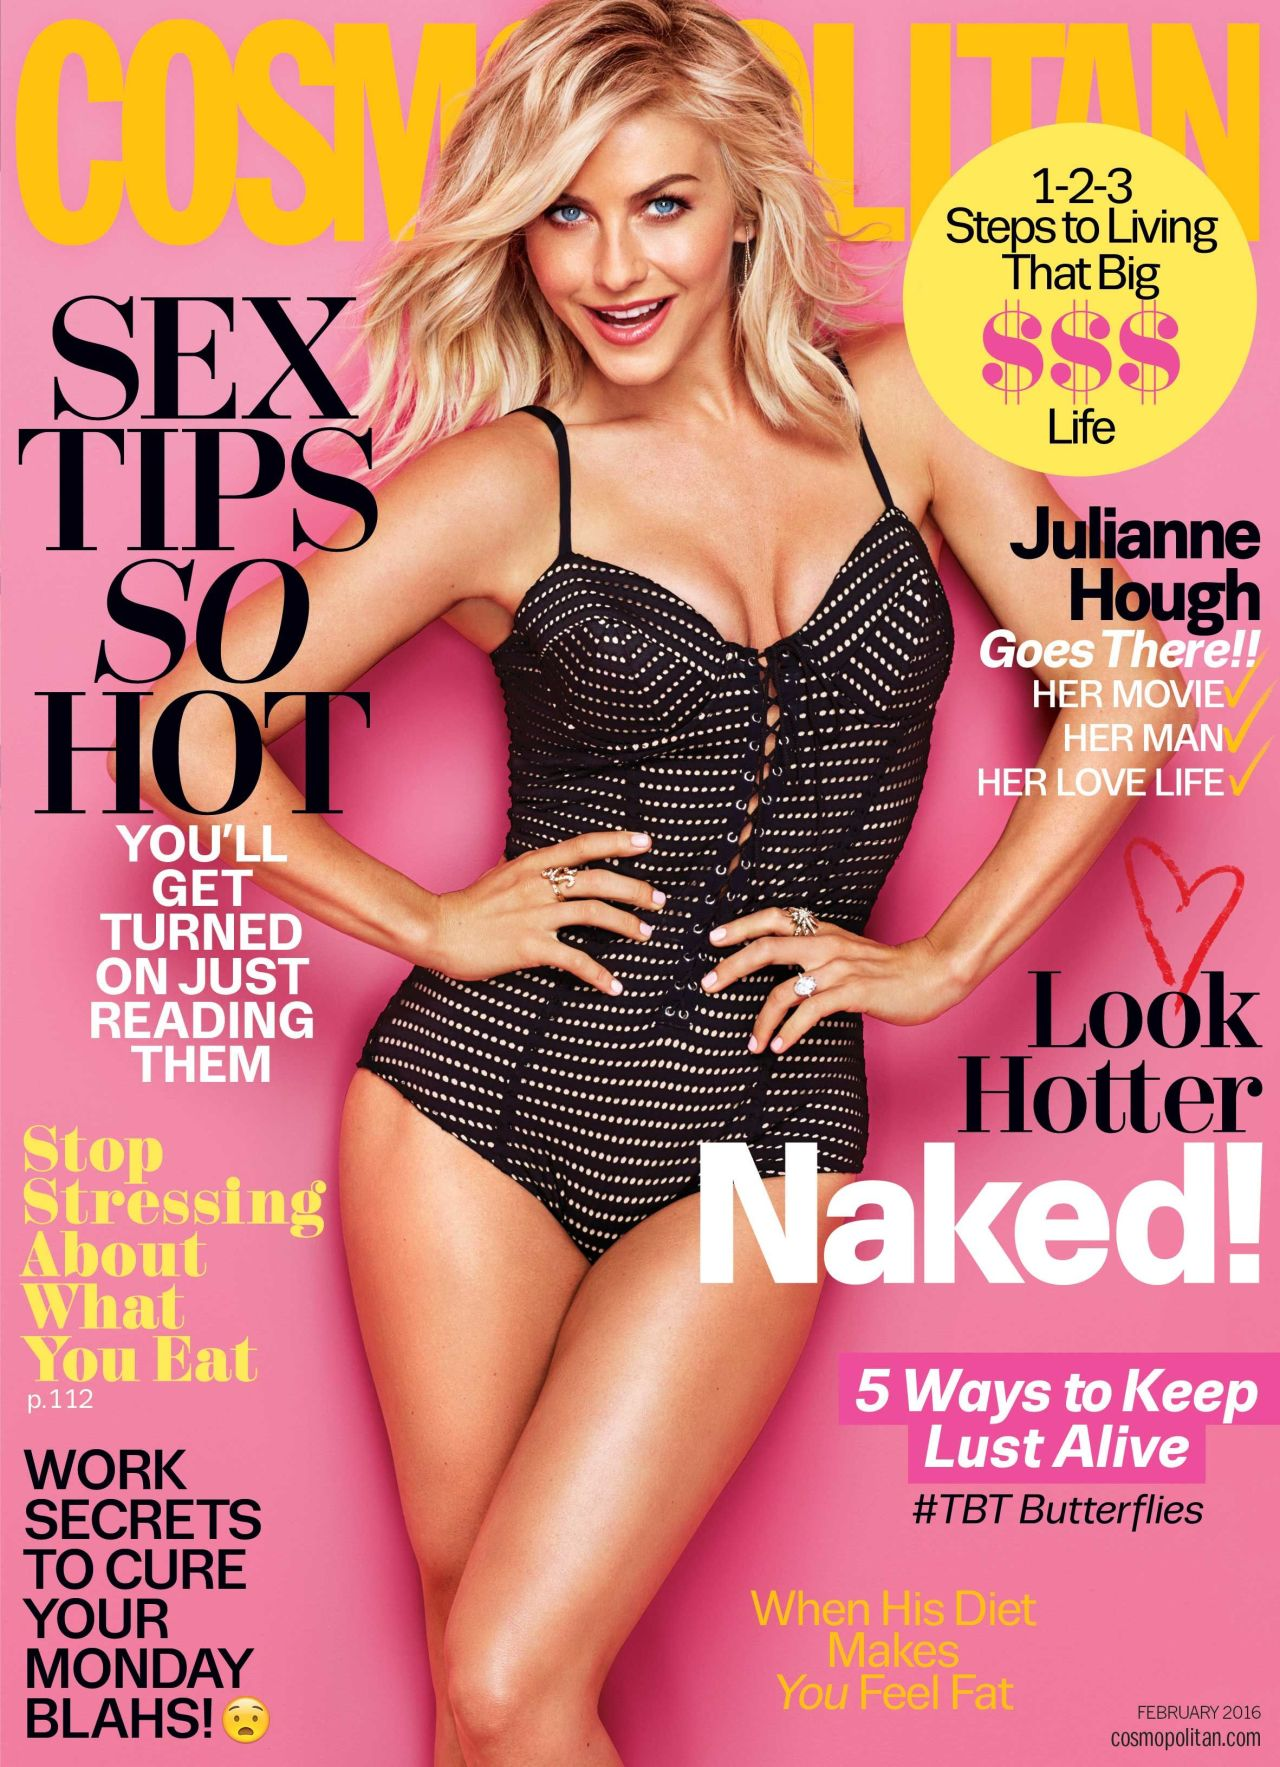 Image result for cosmo cover